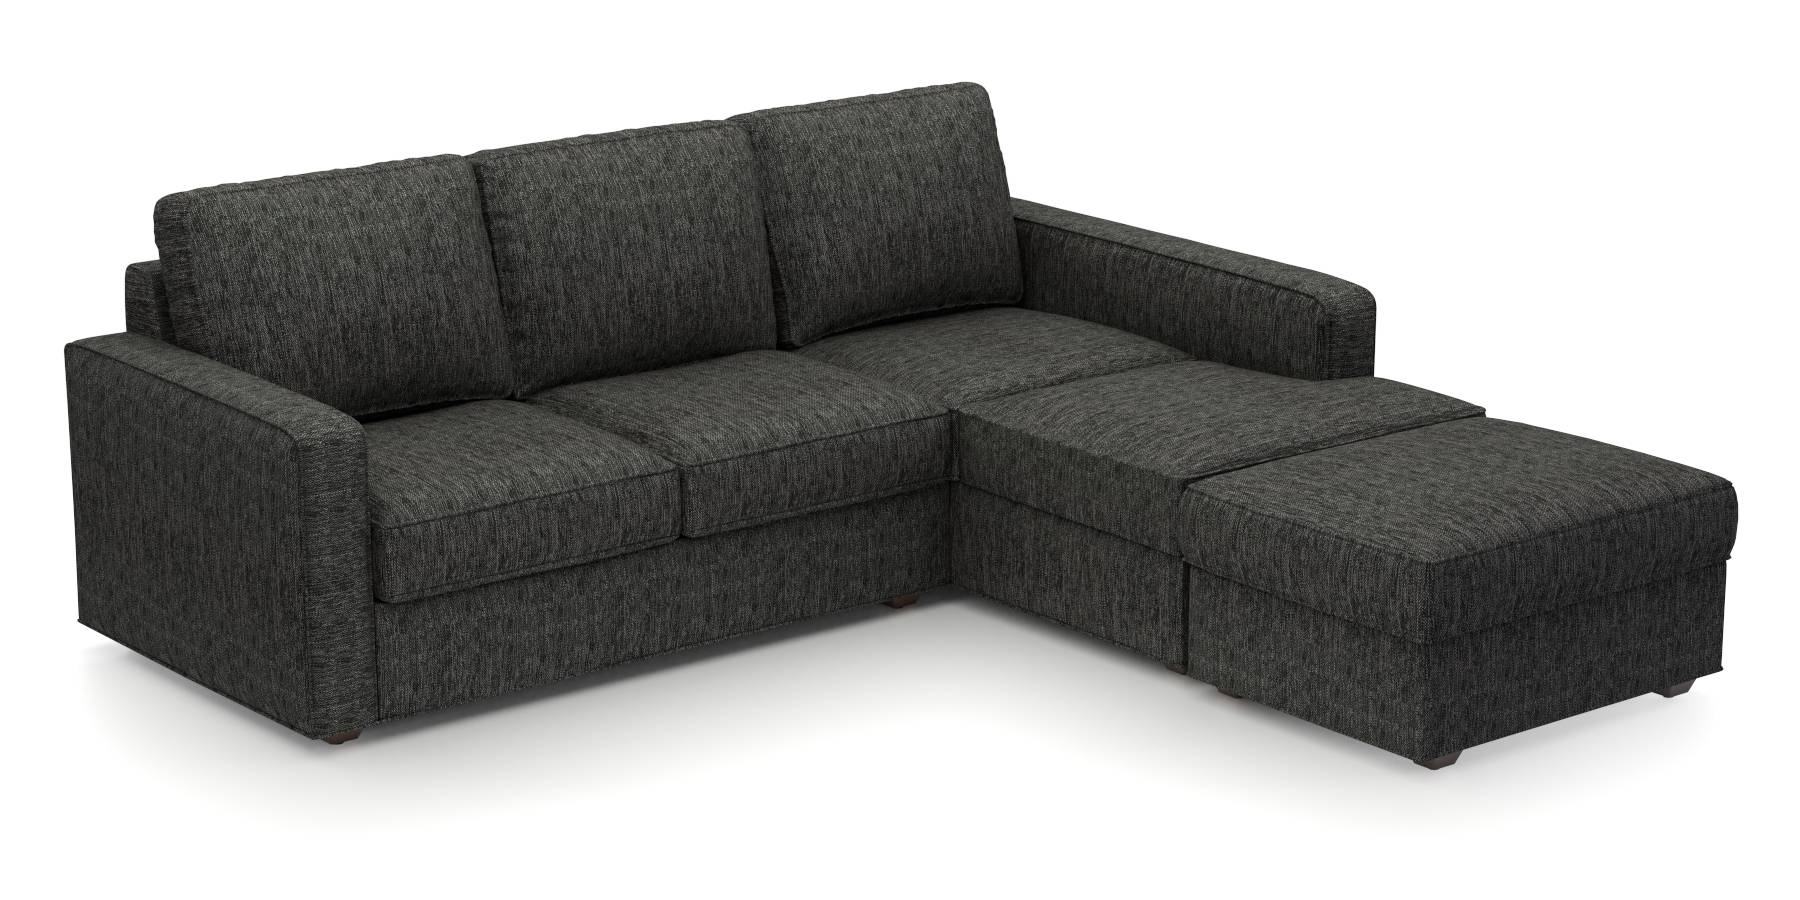 Apollo Sofa Set (Cosmic, Fabric Sofa Material, Regular Sofa Size, Soft Cushion Type, Sectional Sofa Type, Sectional Master Sofa Component) by Urban Ladder